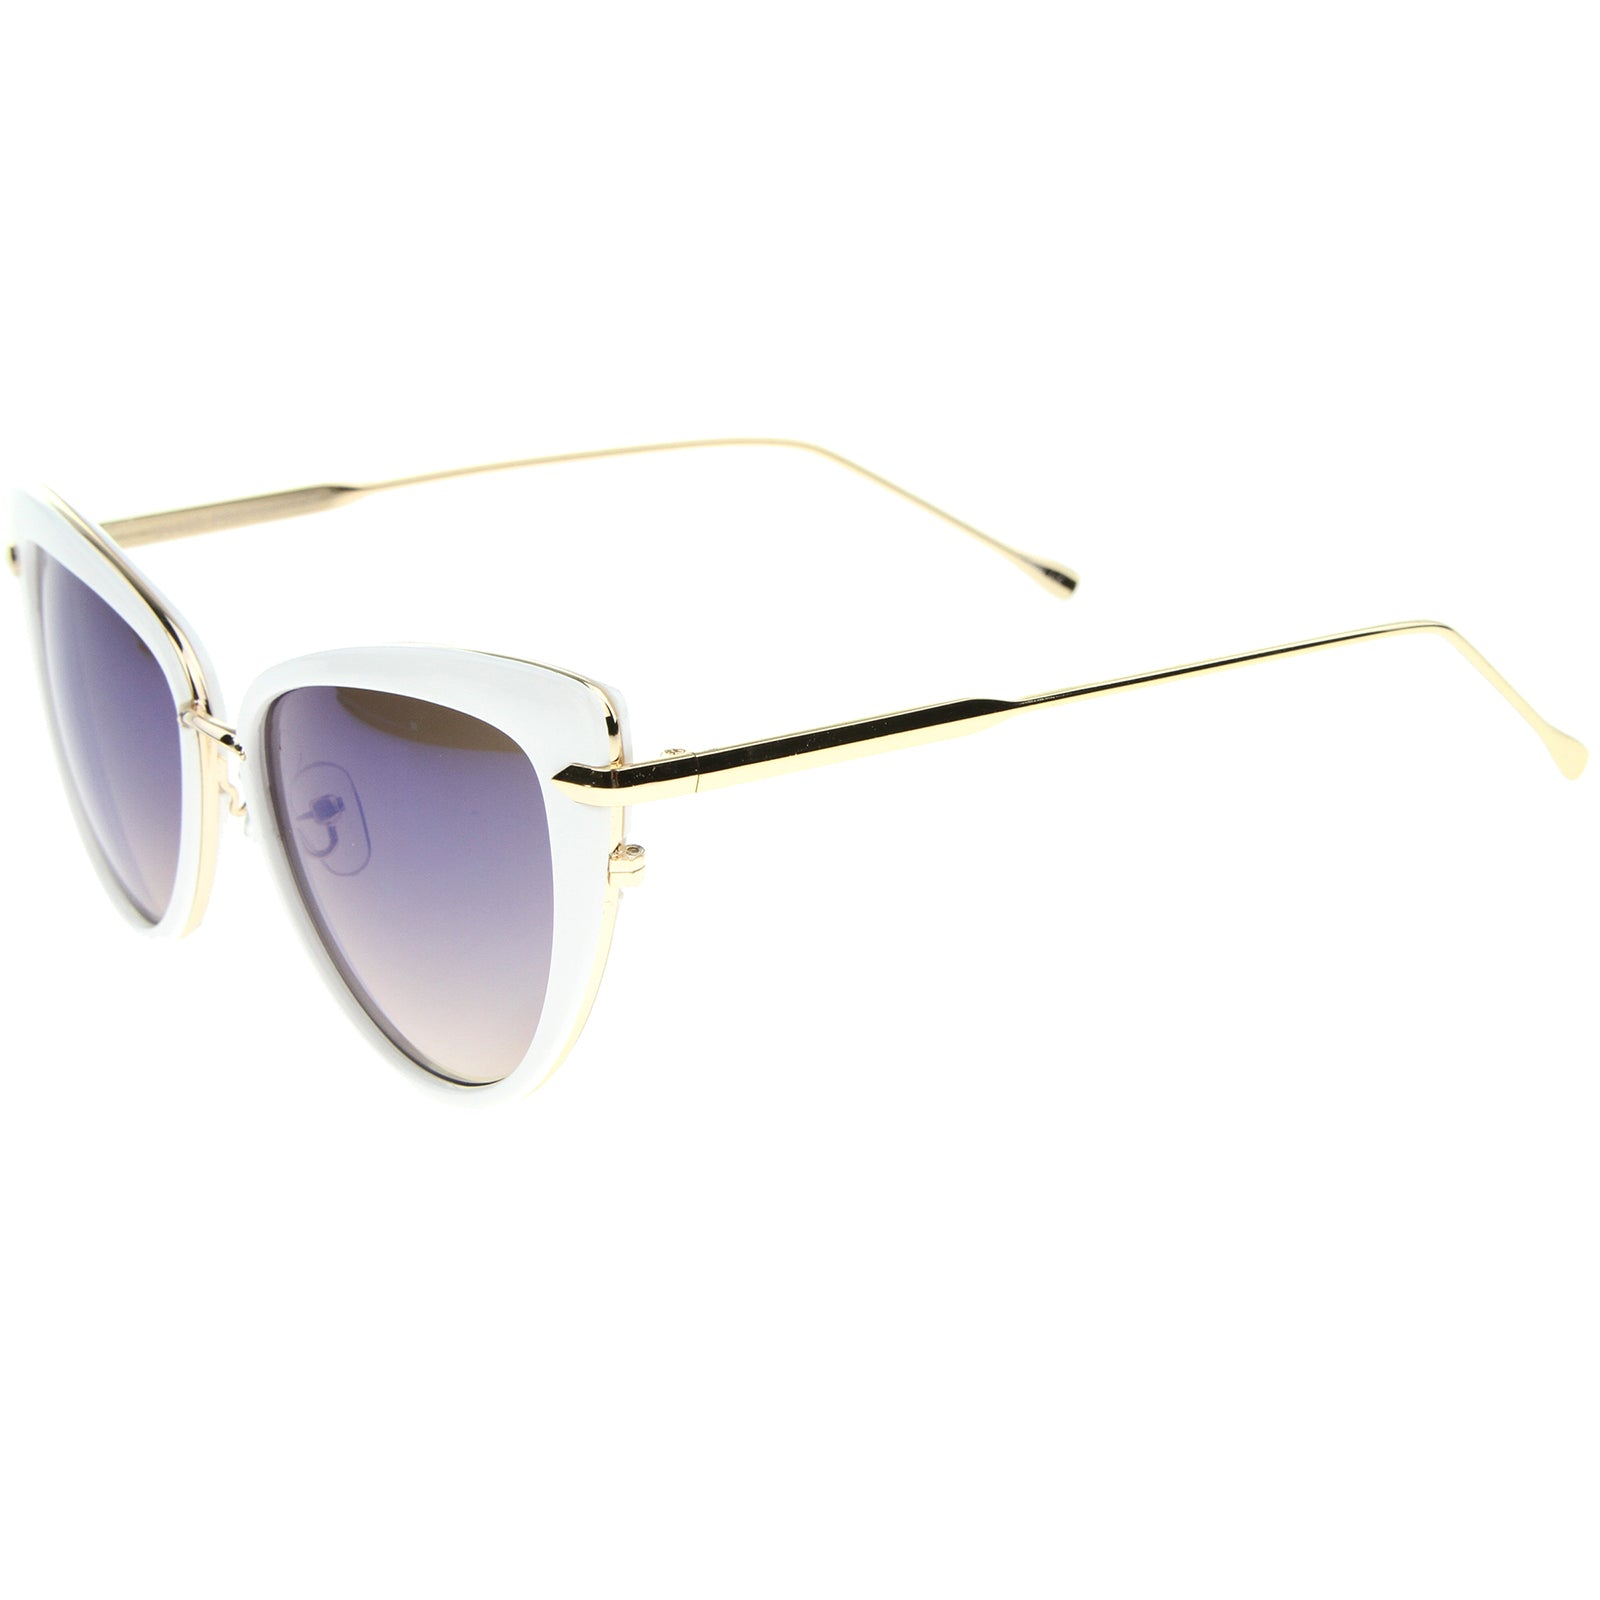 Women's High Fashion Metal Temple Super Cat Eye Sunglasses 55mm - sunglass.la - 11